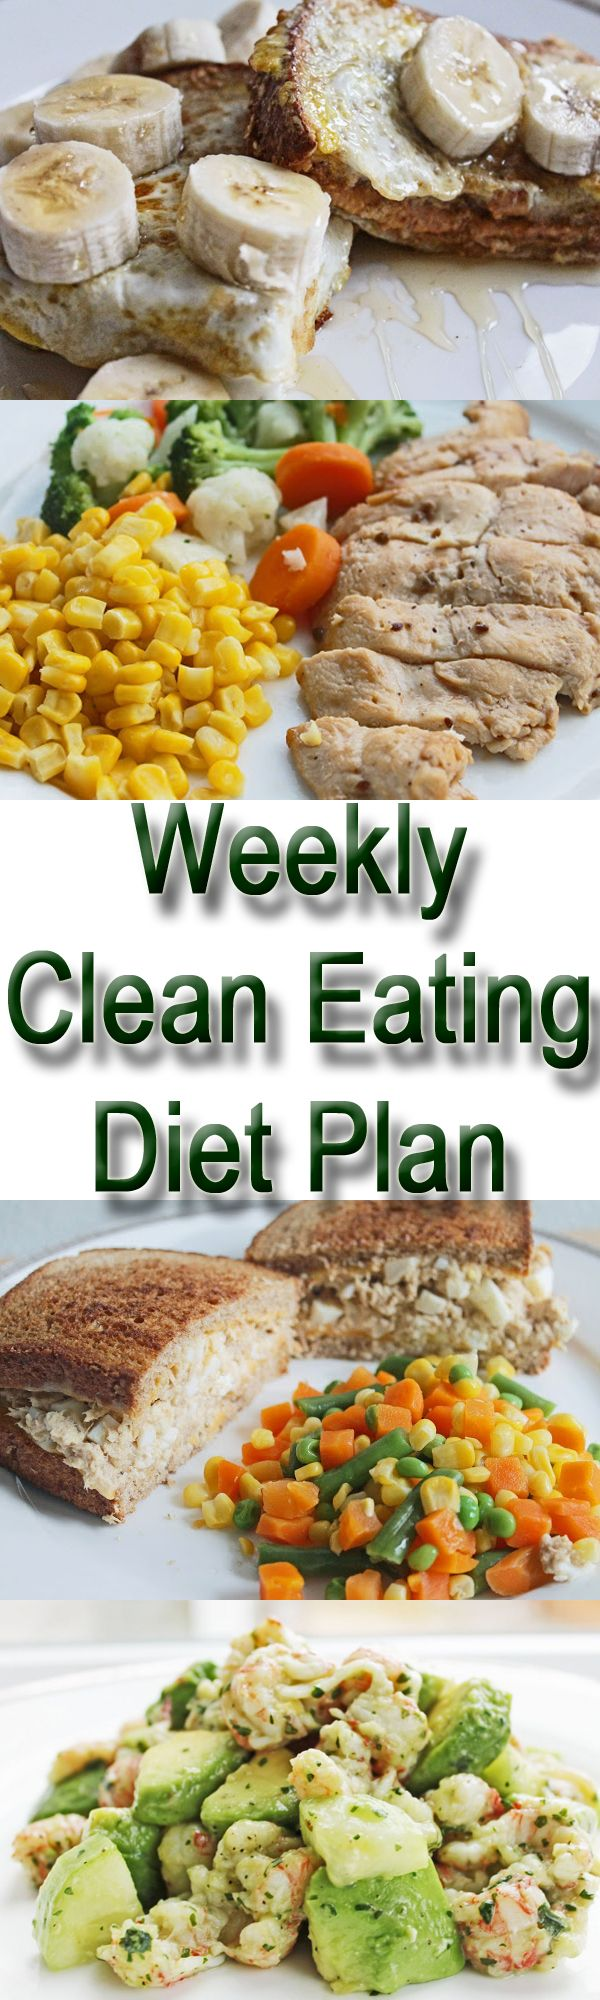 Clean Eating Meal Plan | Clean Eating Diet Plan Meal Plan and Recipes #cleaneating #healthyeating #healthyweightloss